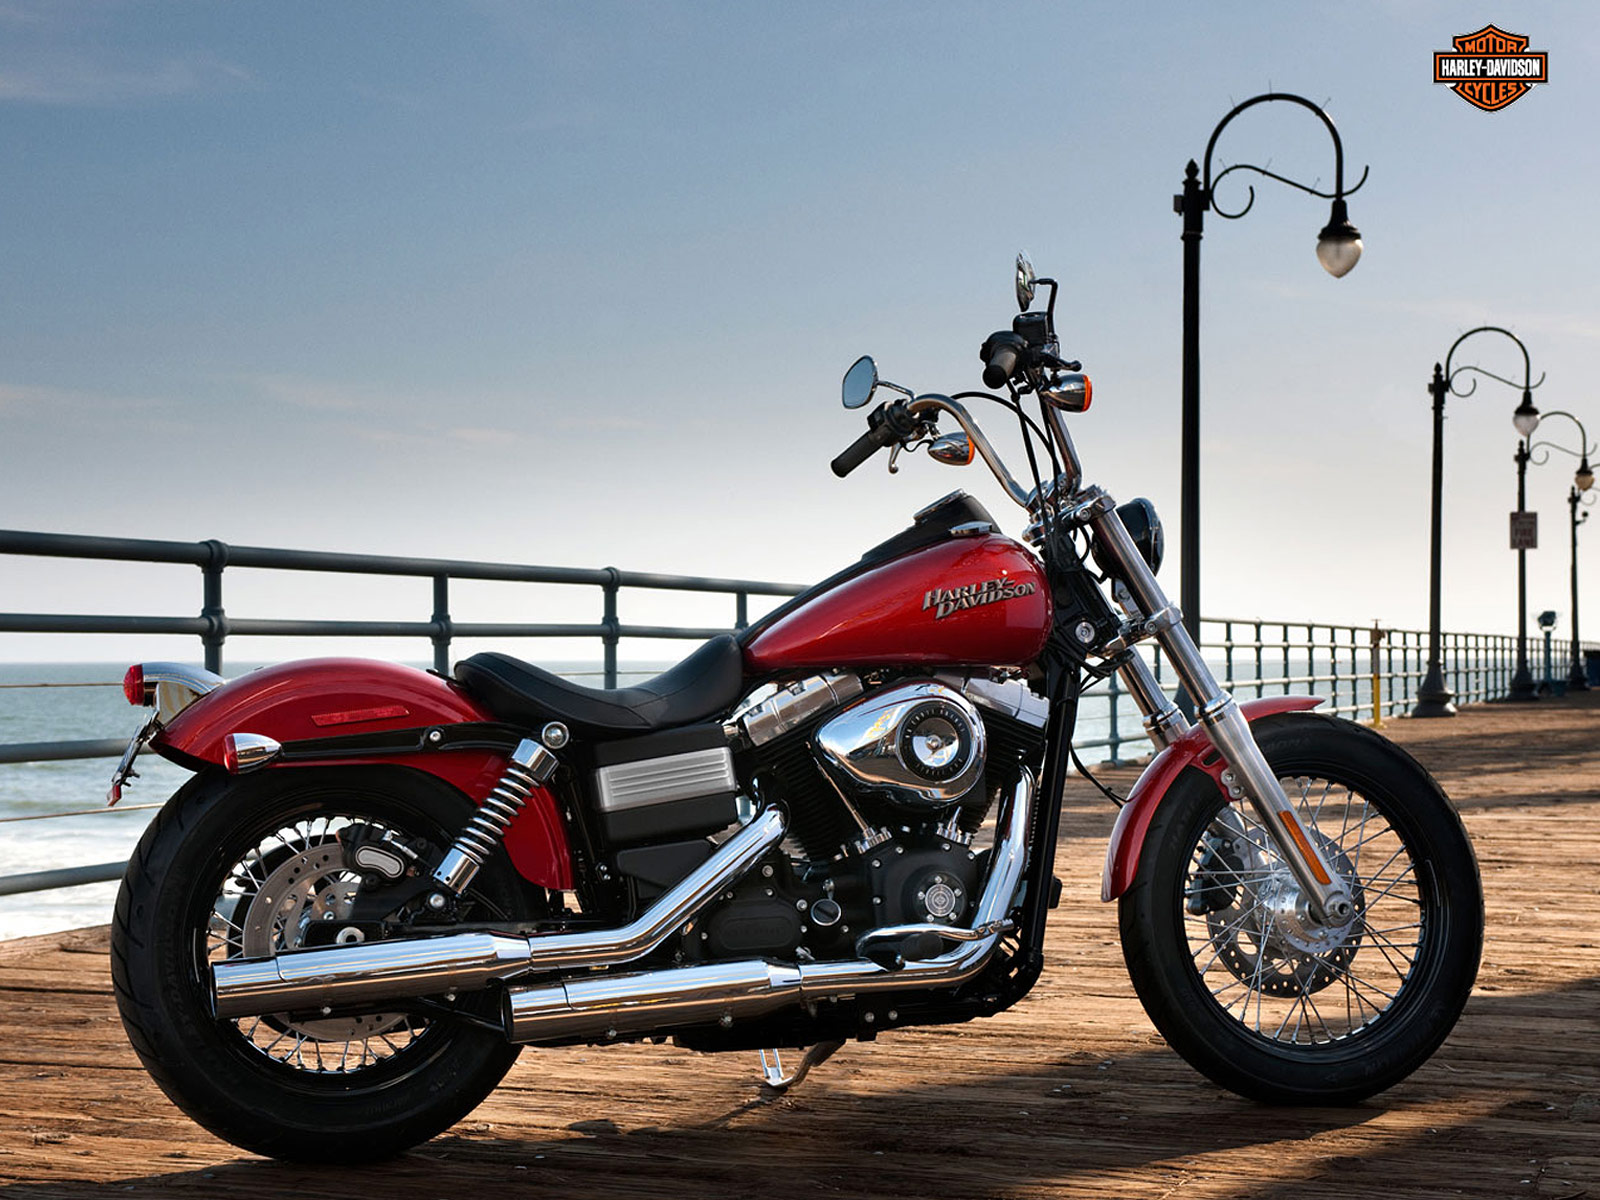 2012 fxdb dyna street bob harley davidson pictures review. Black Bedroom Furniture Sets. Home Design Ideas